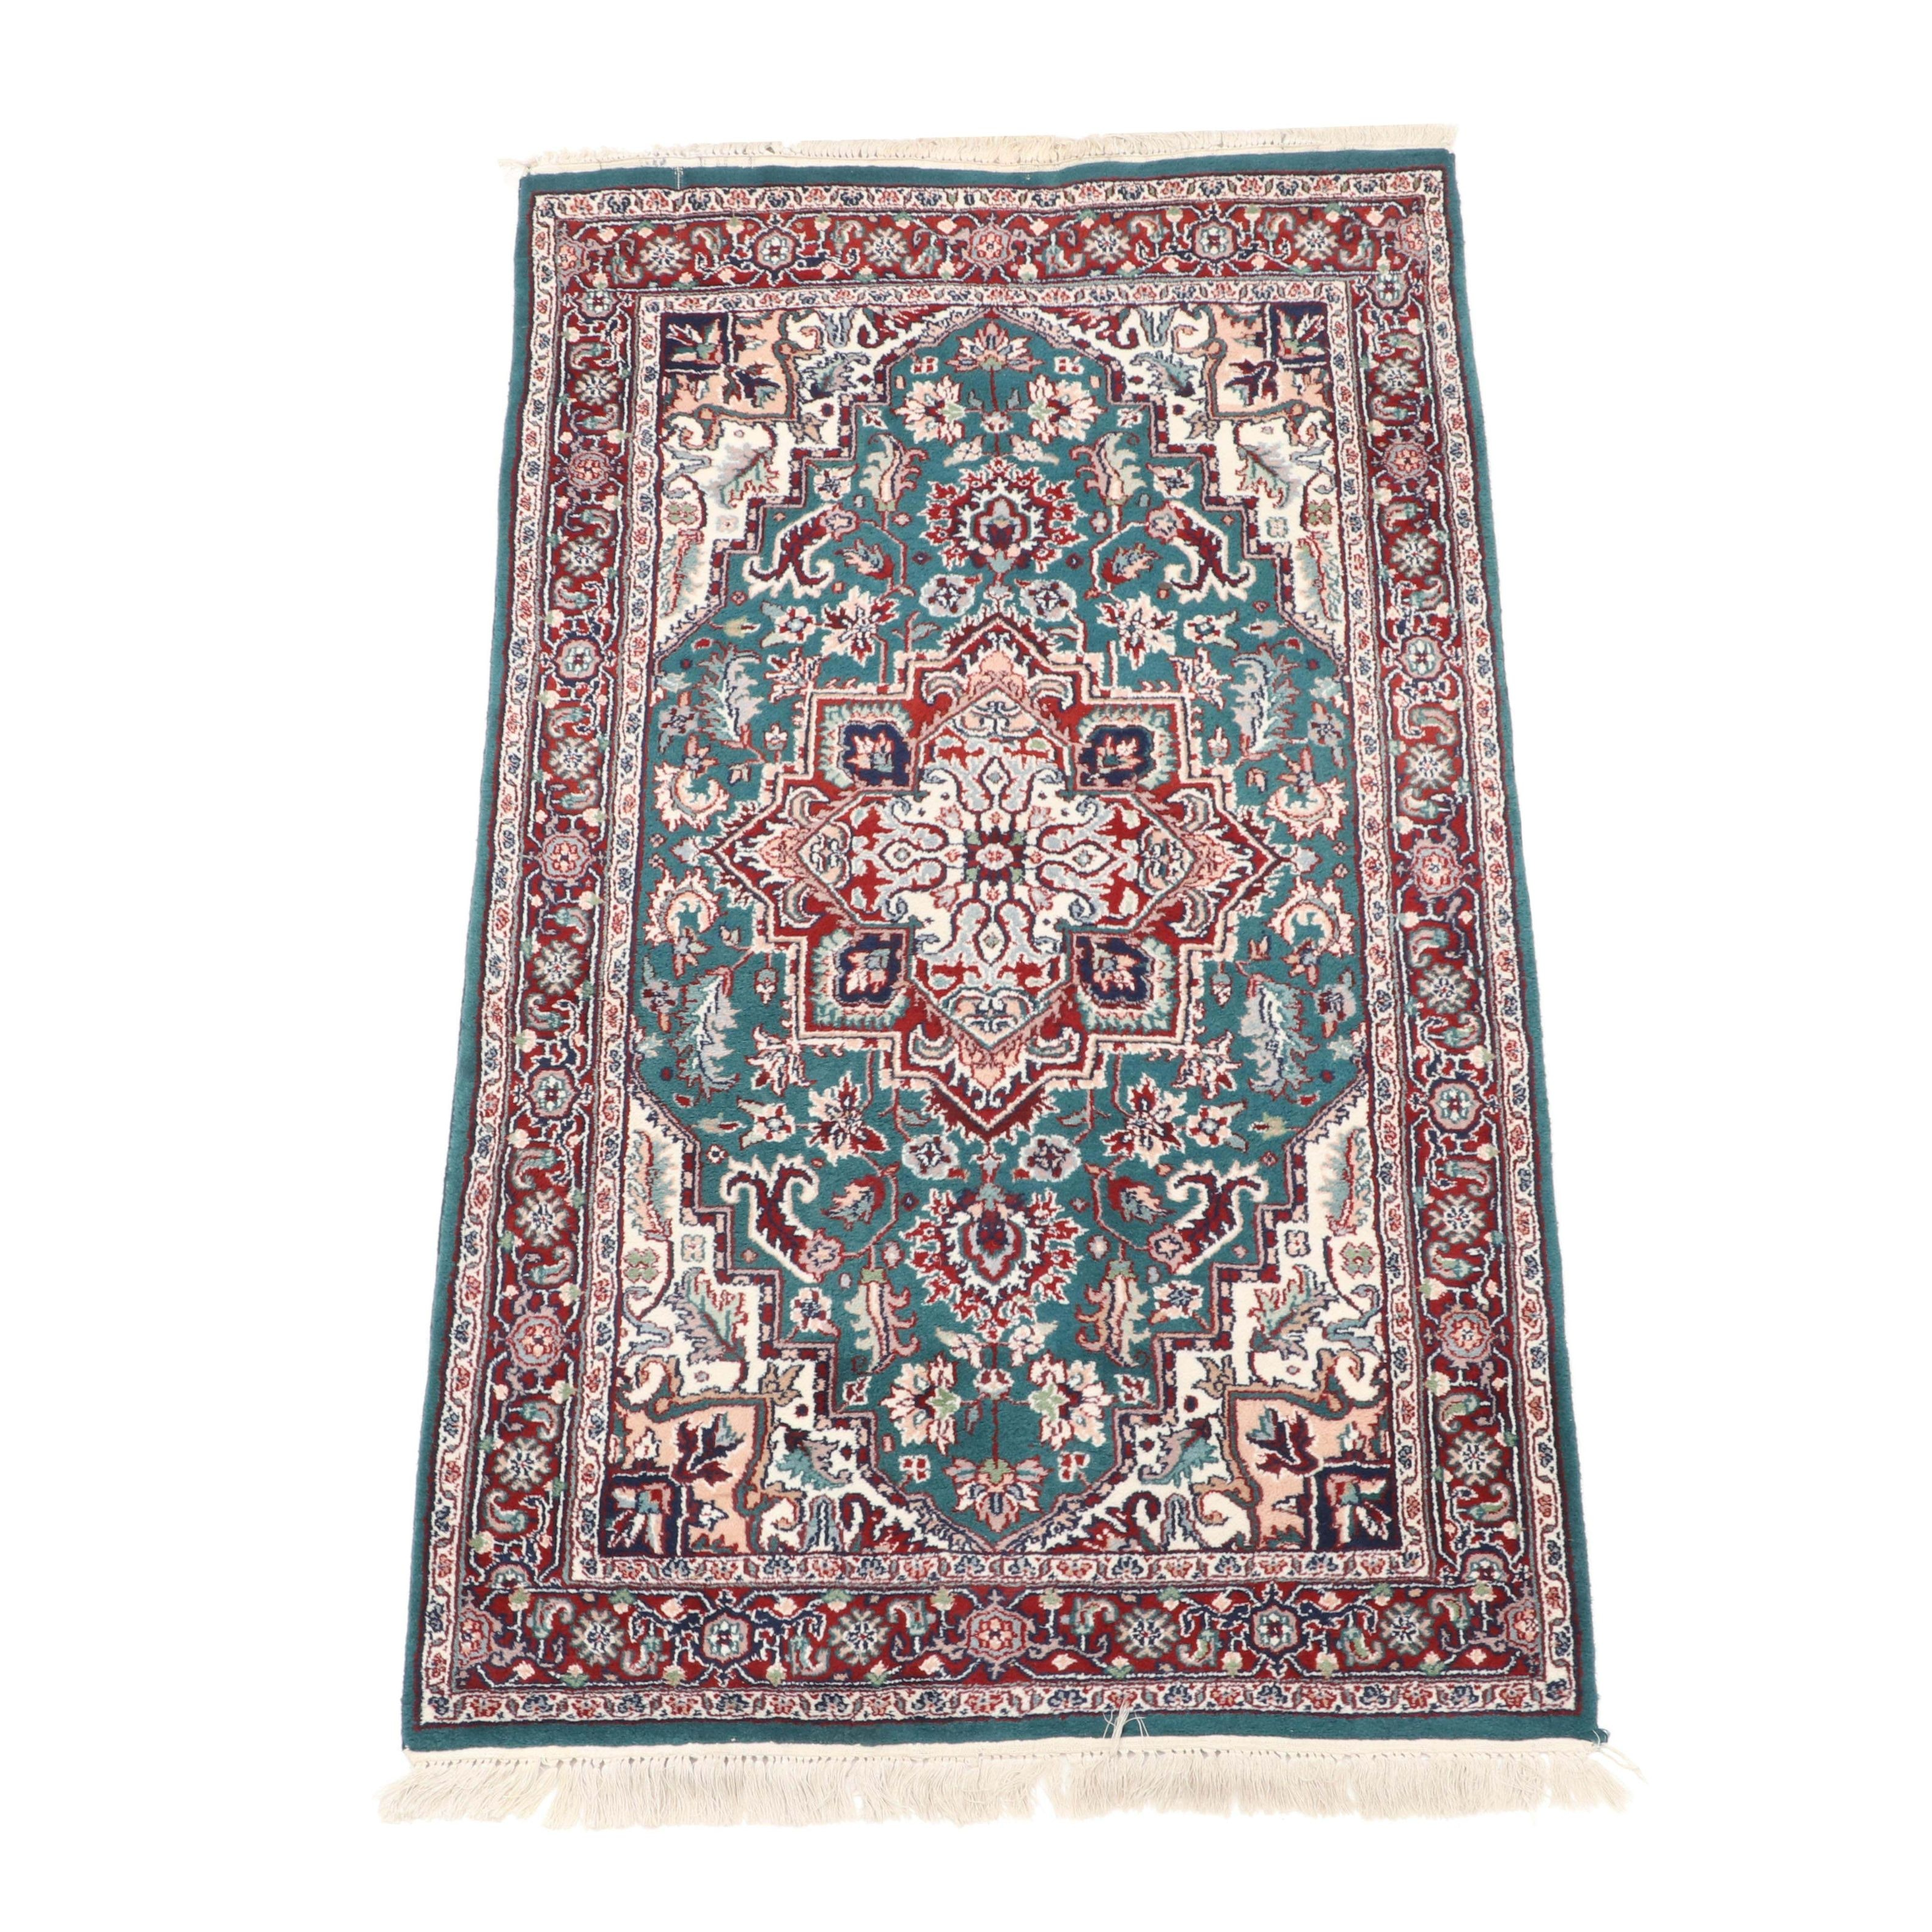 Finely Hand-Knotted Indo-Persian Heriz Area Rug from Aria's Rugs